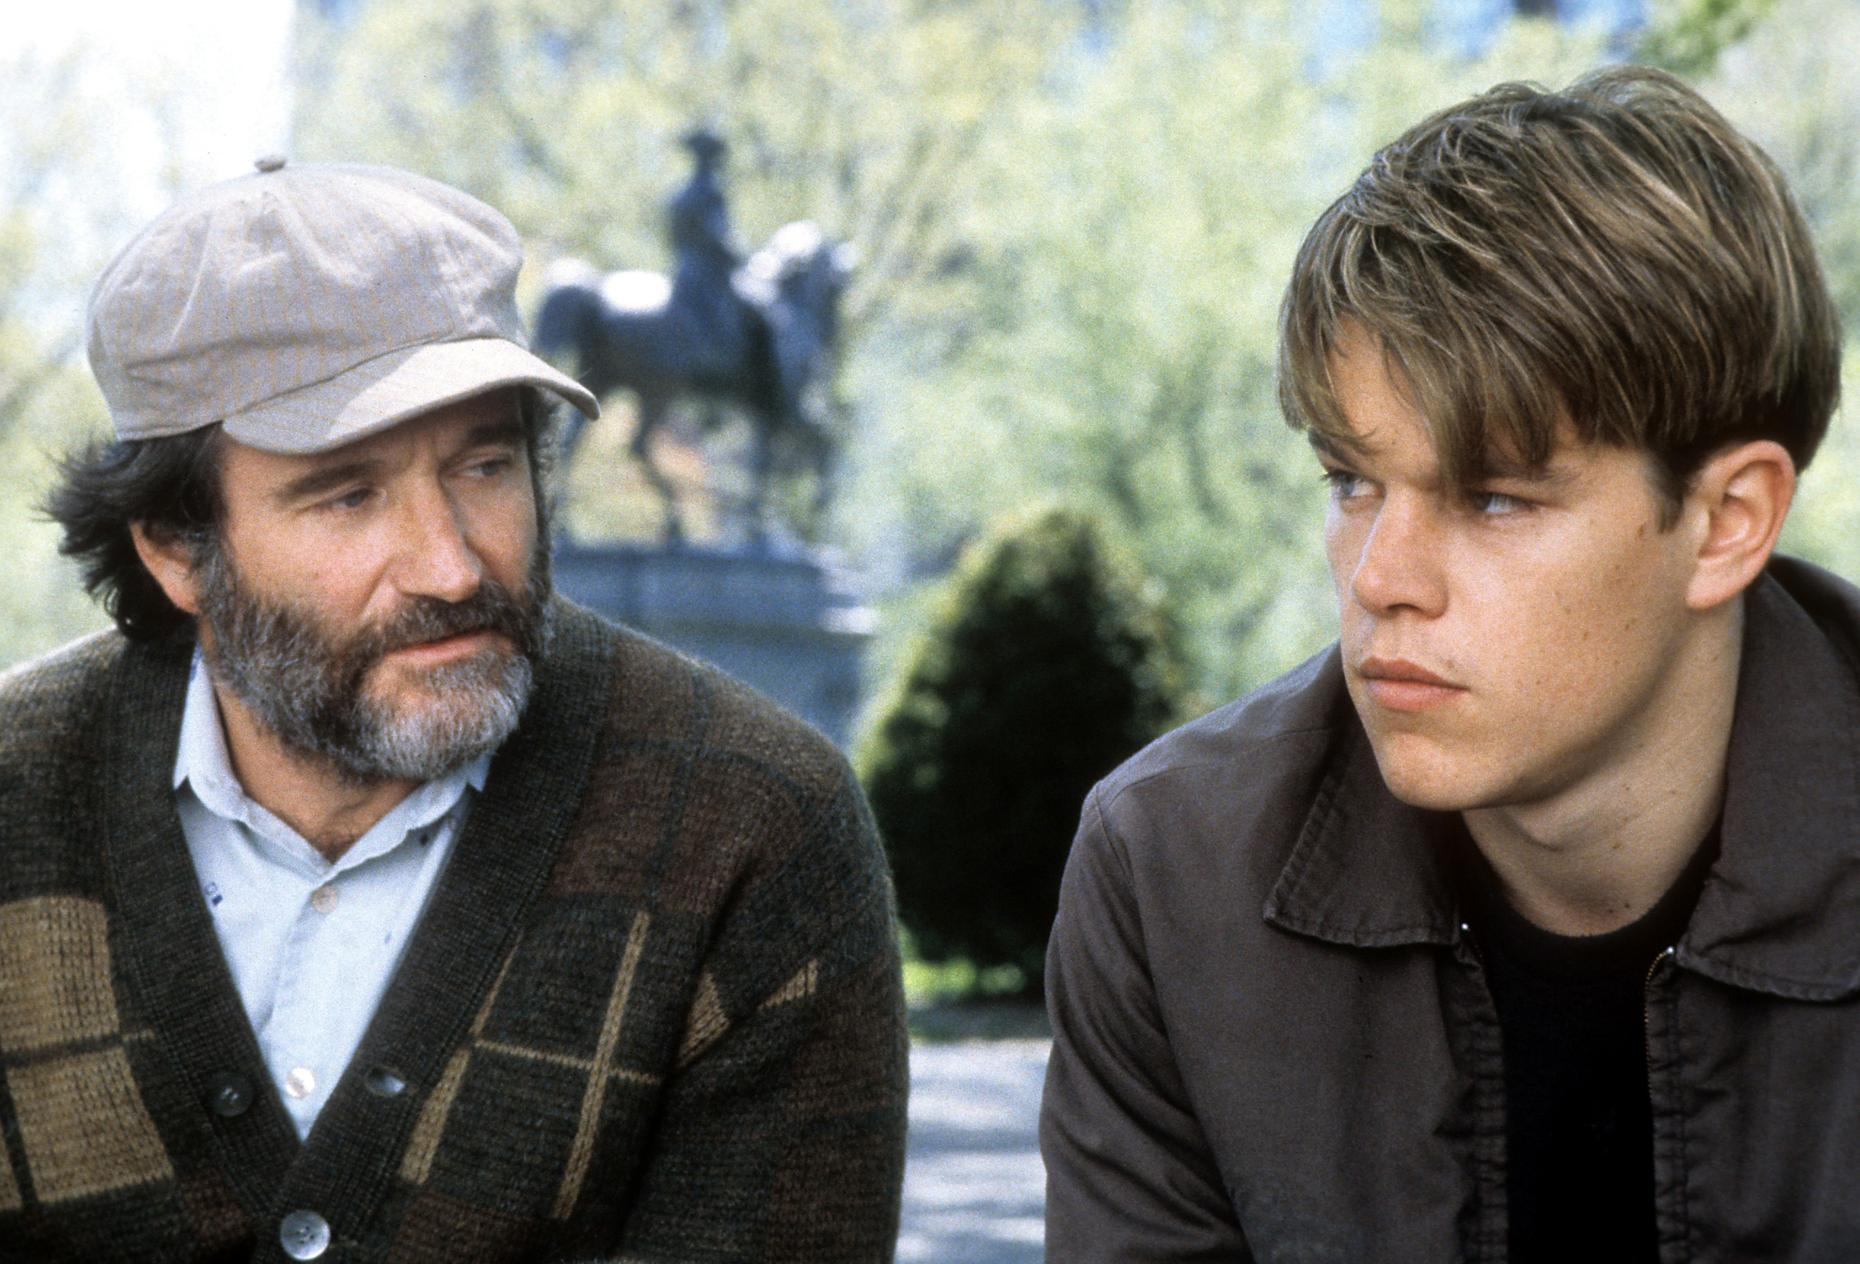 social psychological principles in good will hunting Sample essay topic, essay writing: good will hunting then it continues to social and emotional development this is where they child develops a theory of mind which is an awareness that other people's behavior may be influenced by beliefs, desires, and emotions that differ from one's own (pg.